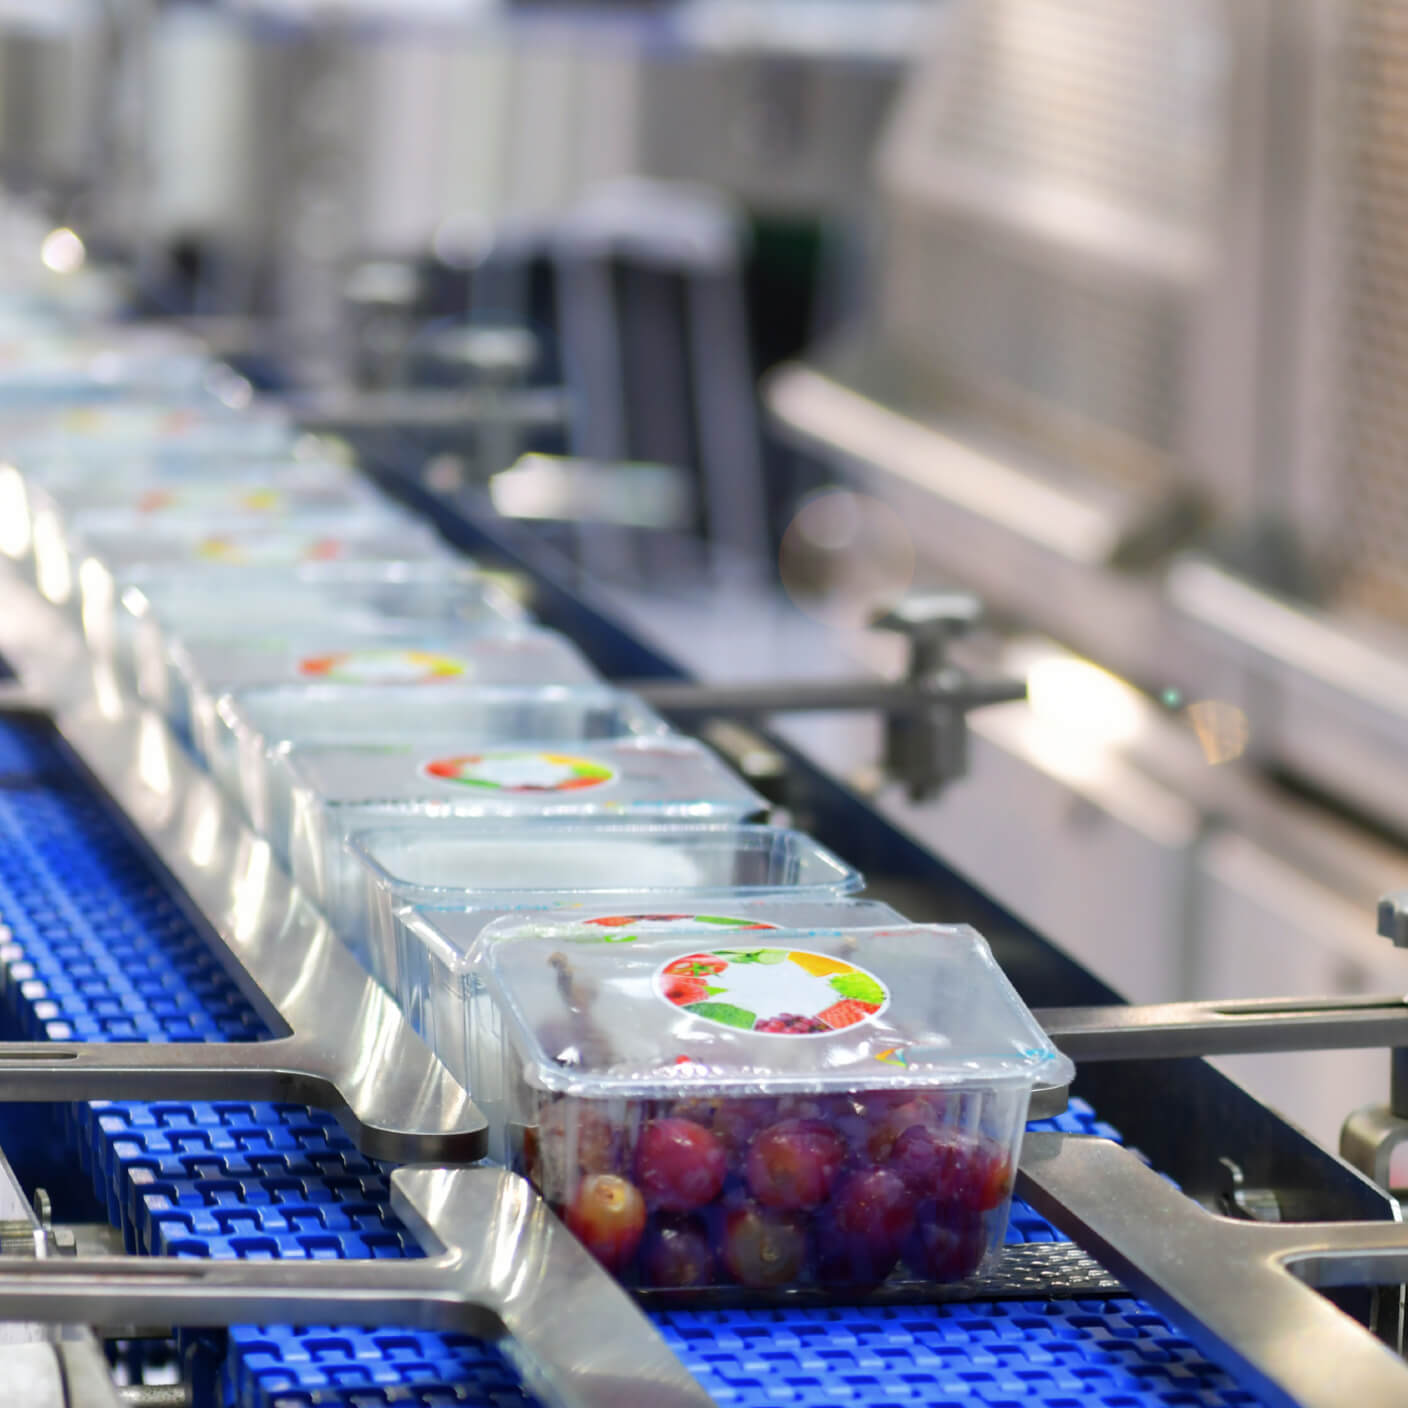 grapes in boxes on a conveyor belt